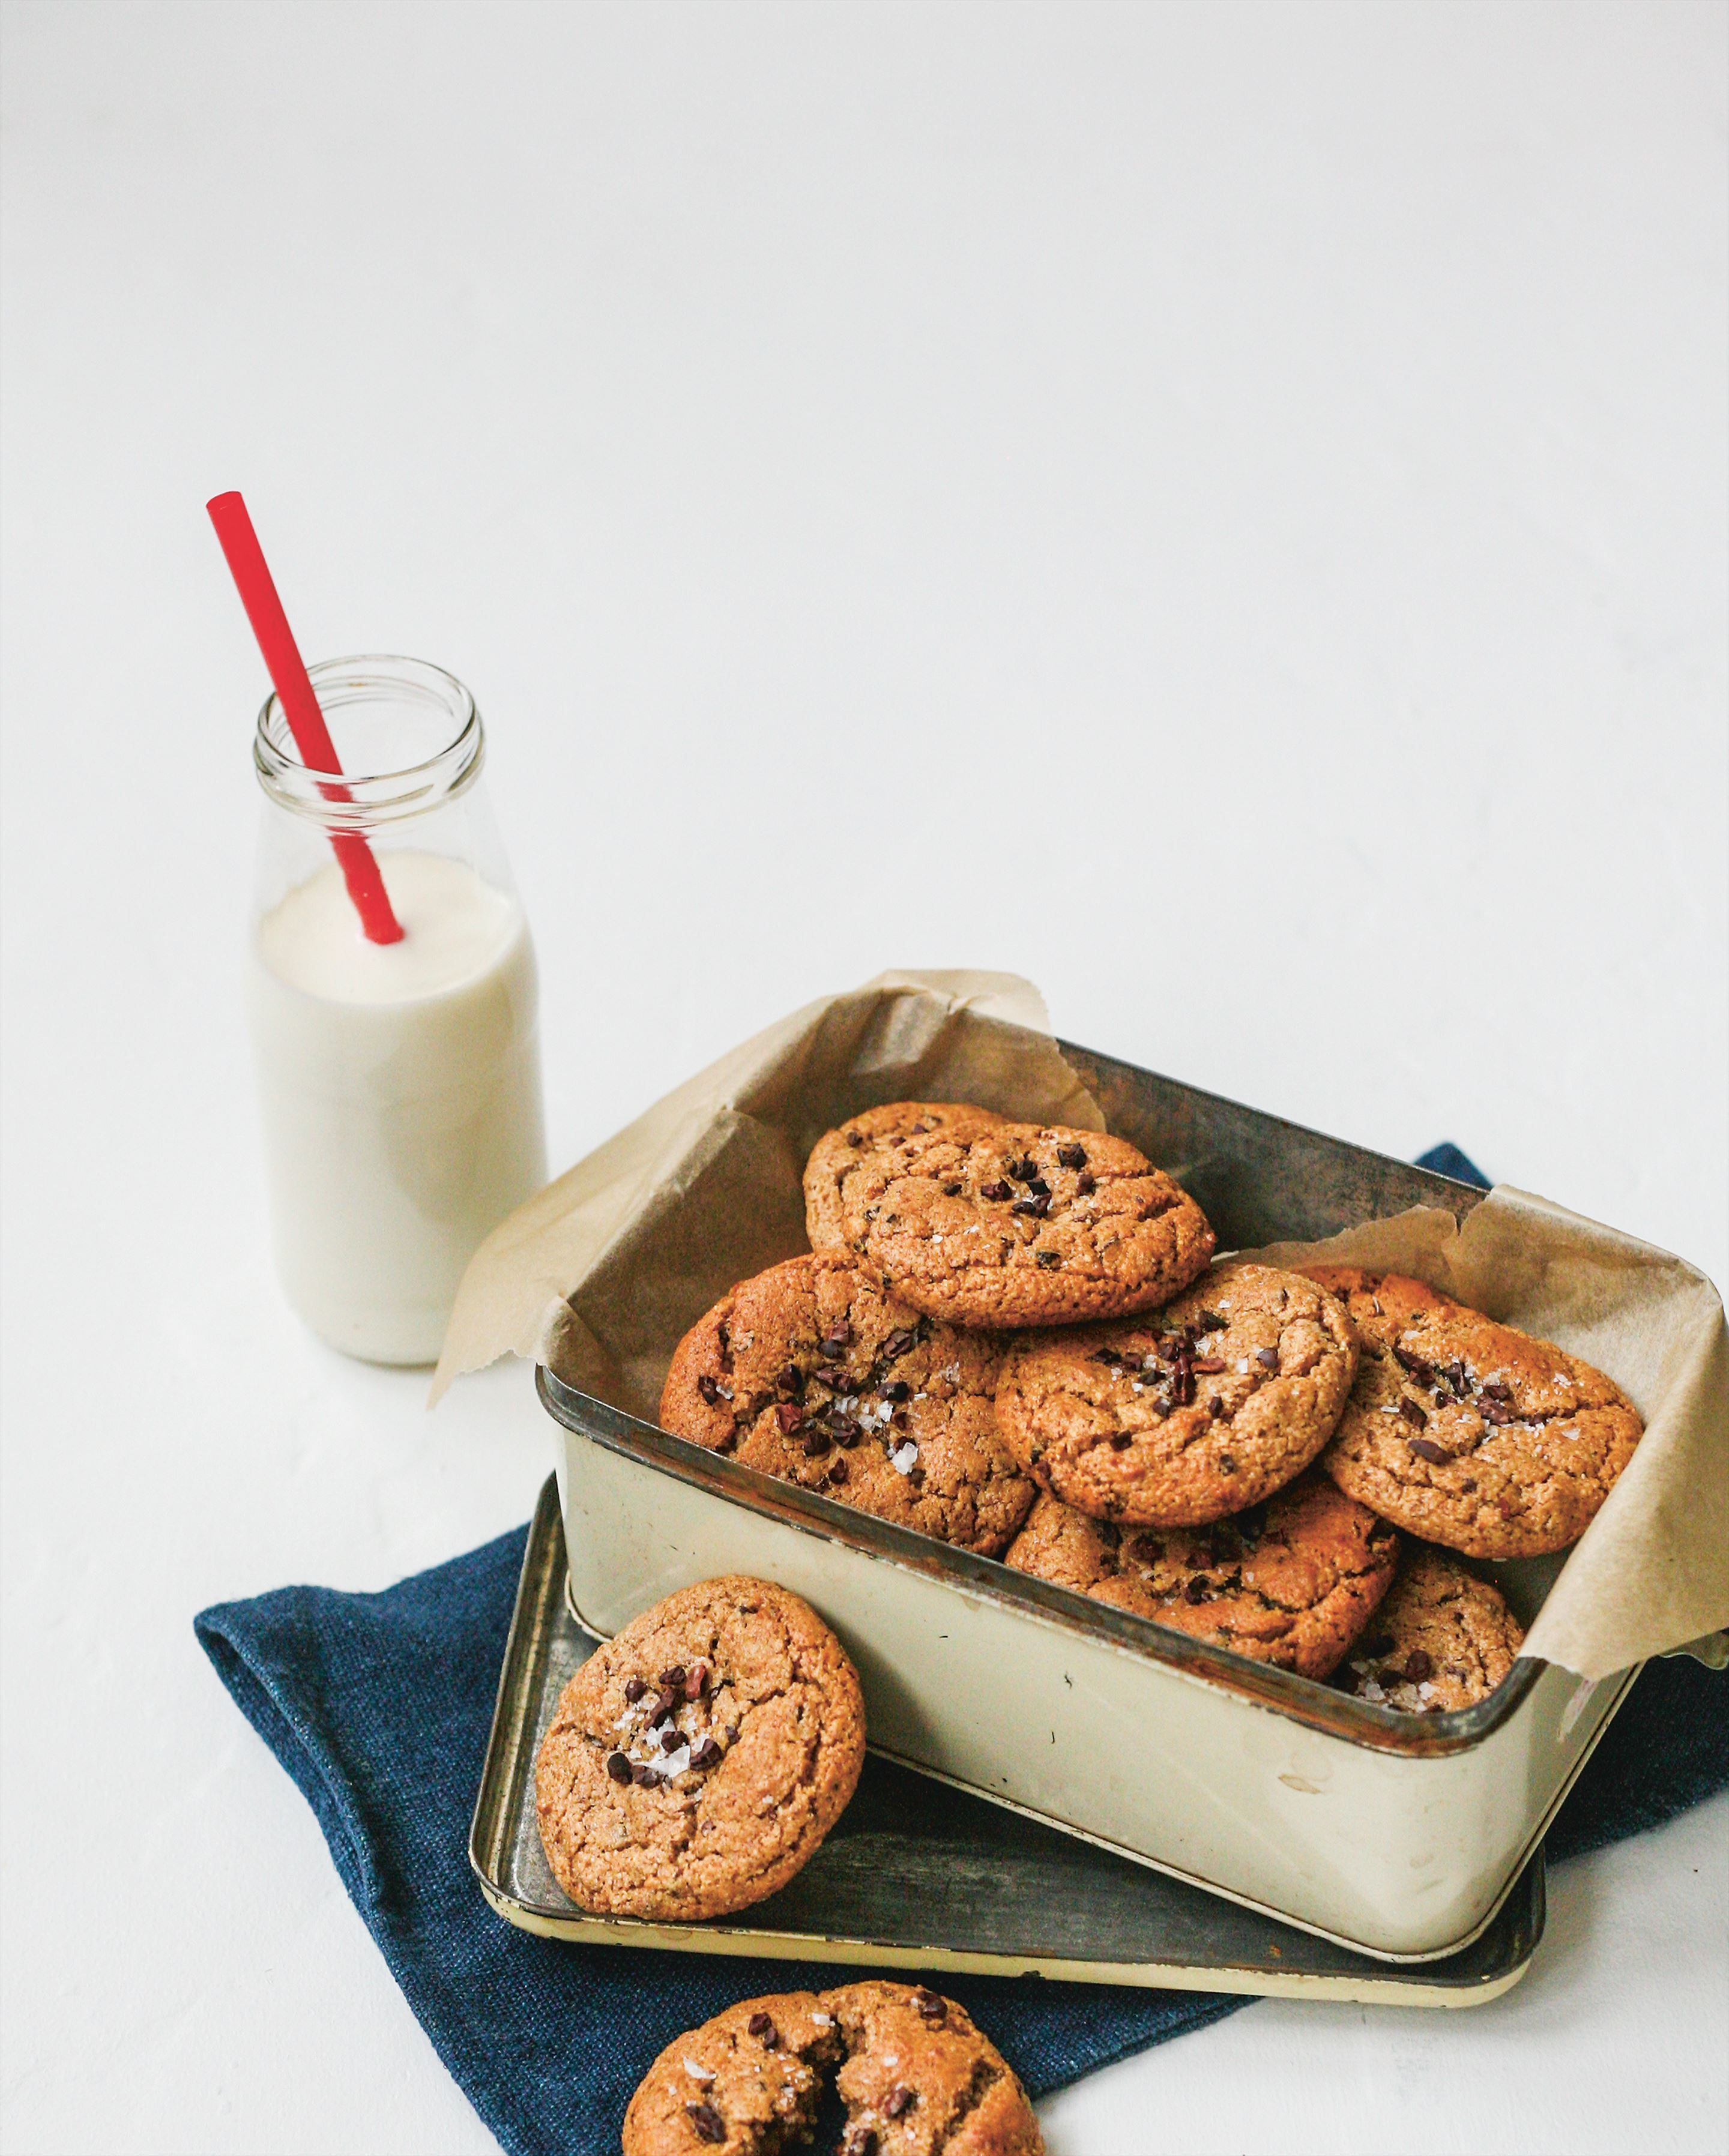 Almond butter & cacao nib cookies